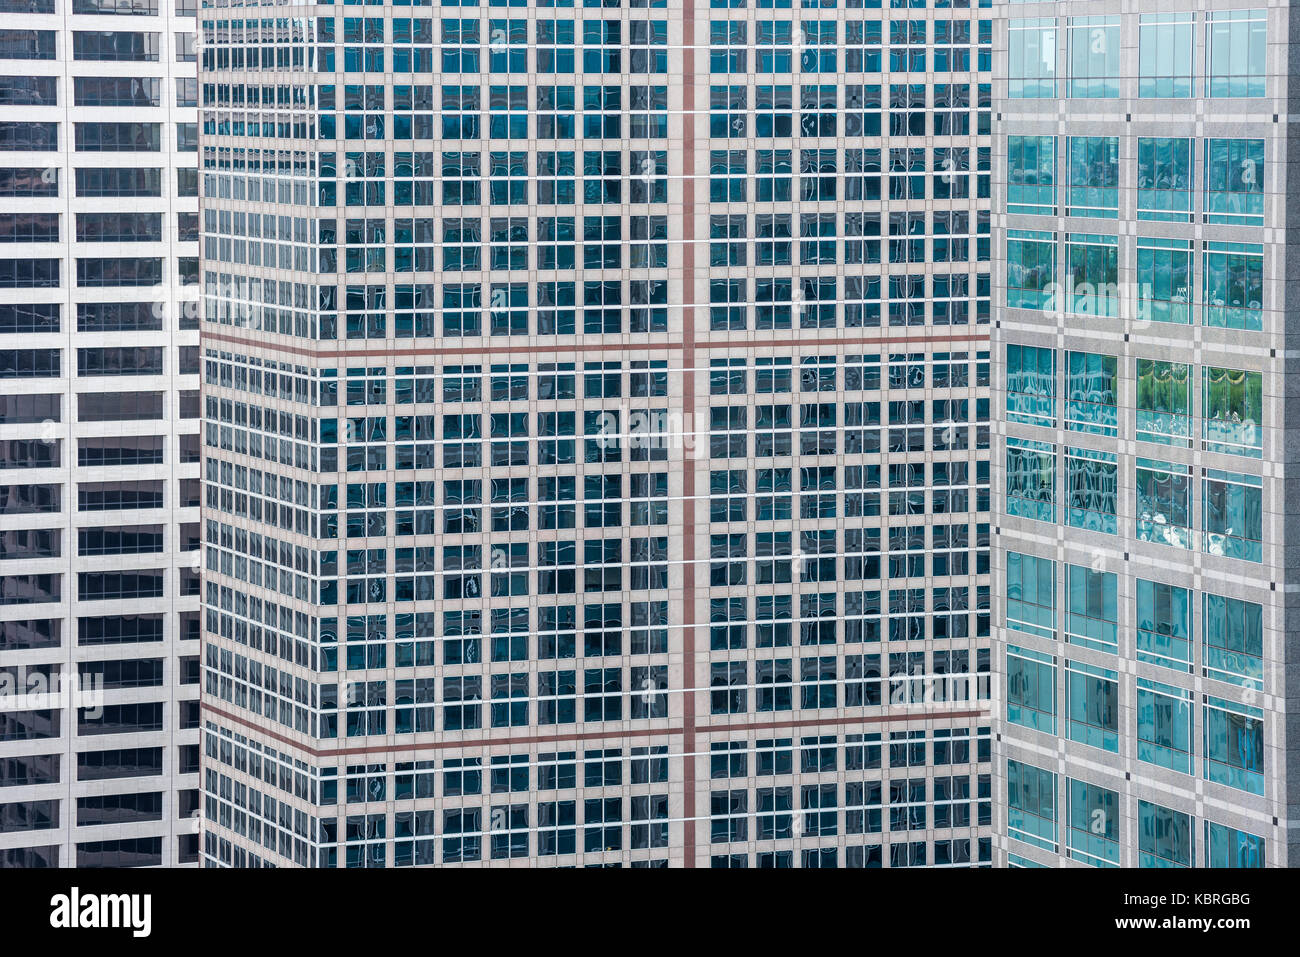 Abstraction of high-rise downtown office buildings. - Stock Image